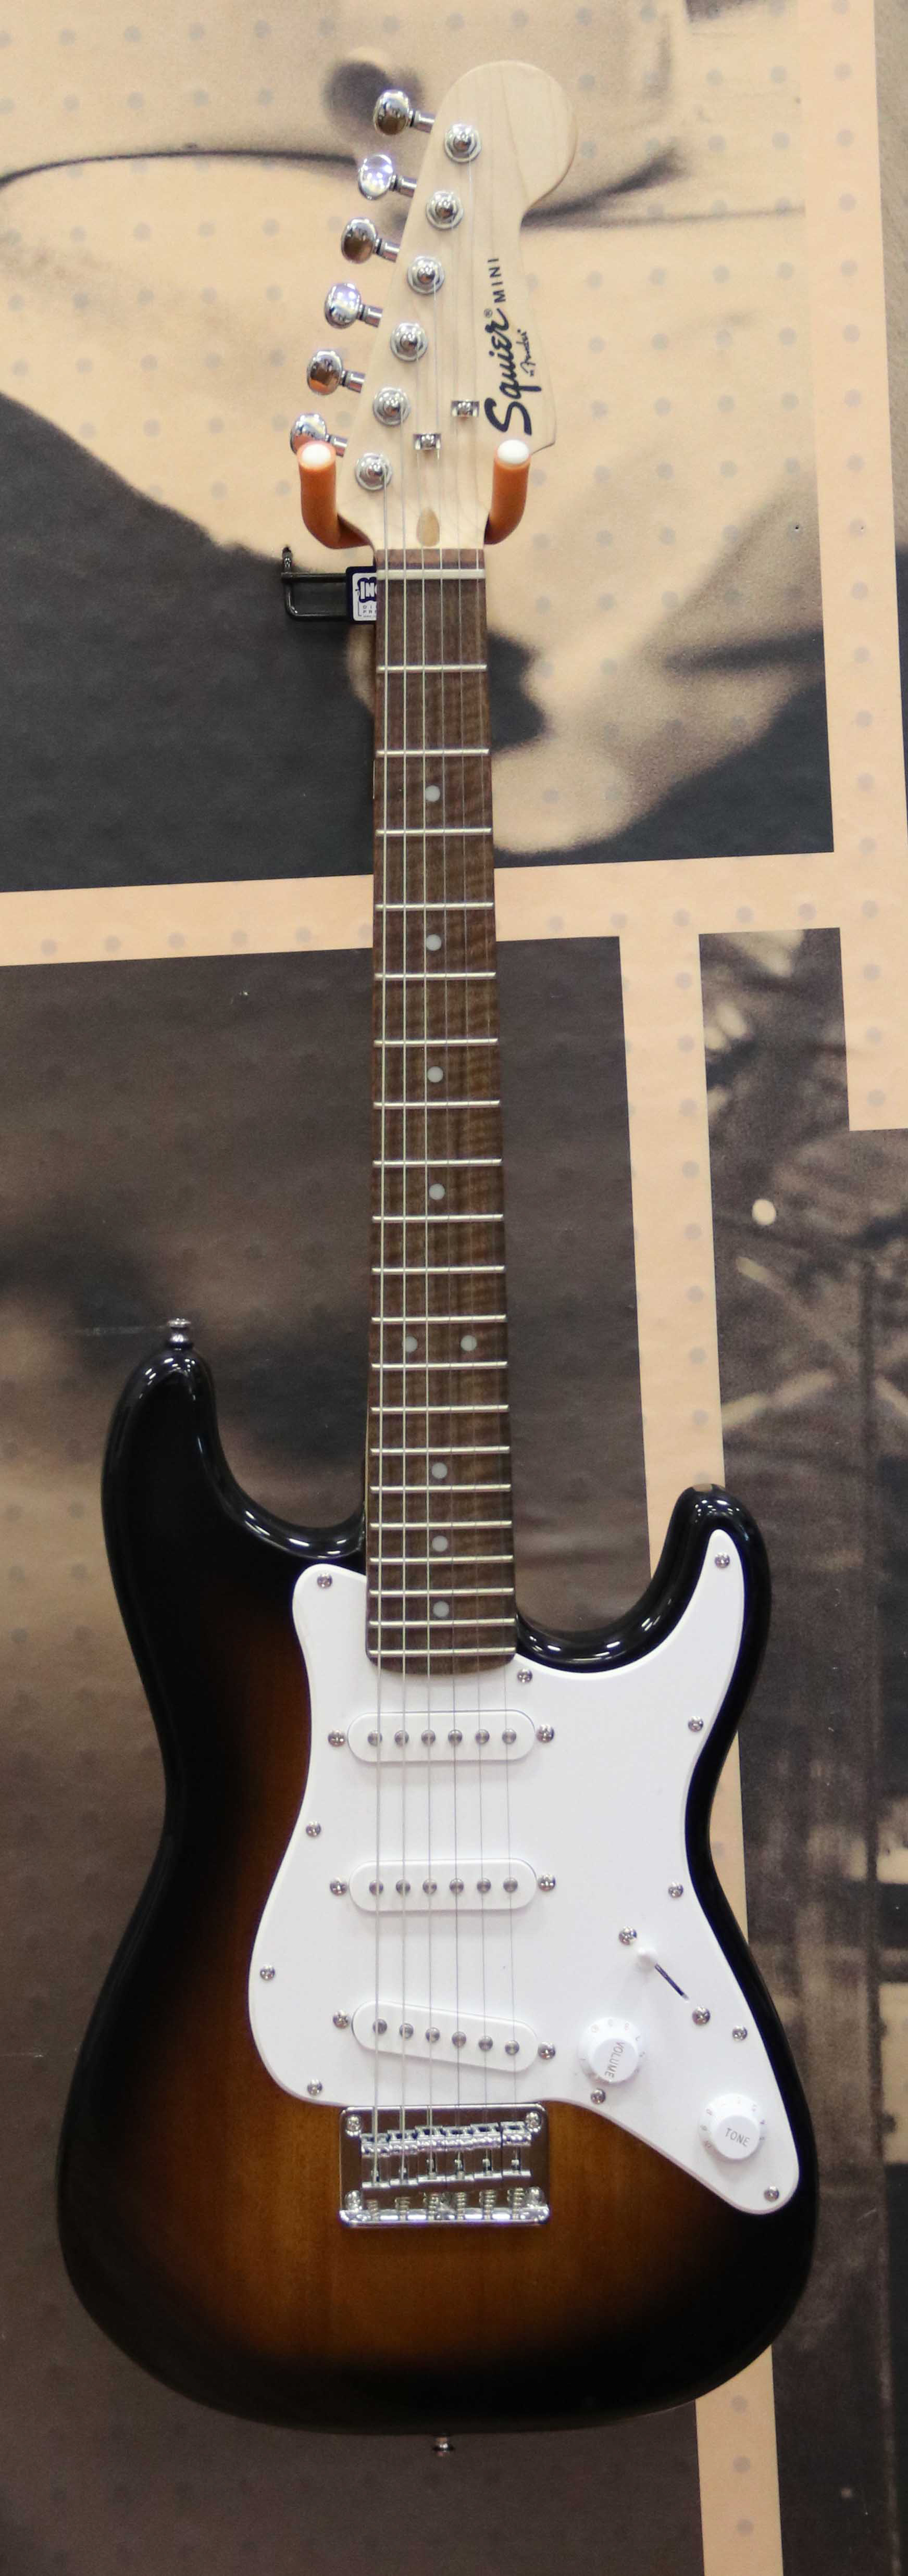 fender squier mini strat electric guitar brown sunburst ebay. Black Bedroom Furniture Sets. Home Design Ideas